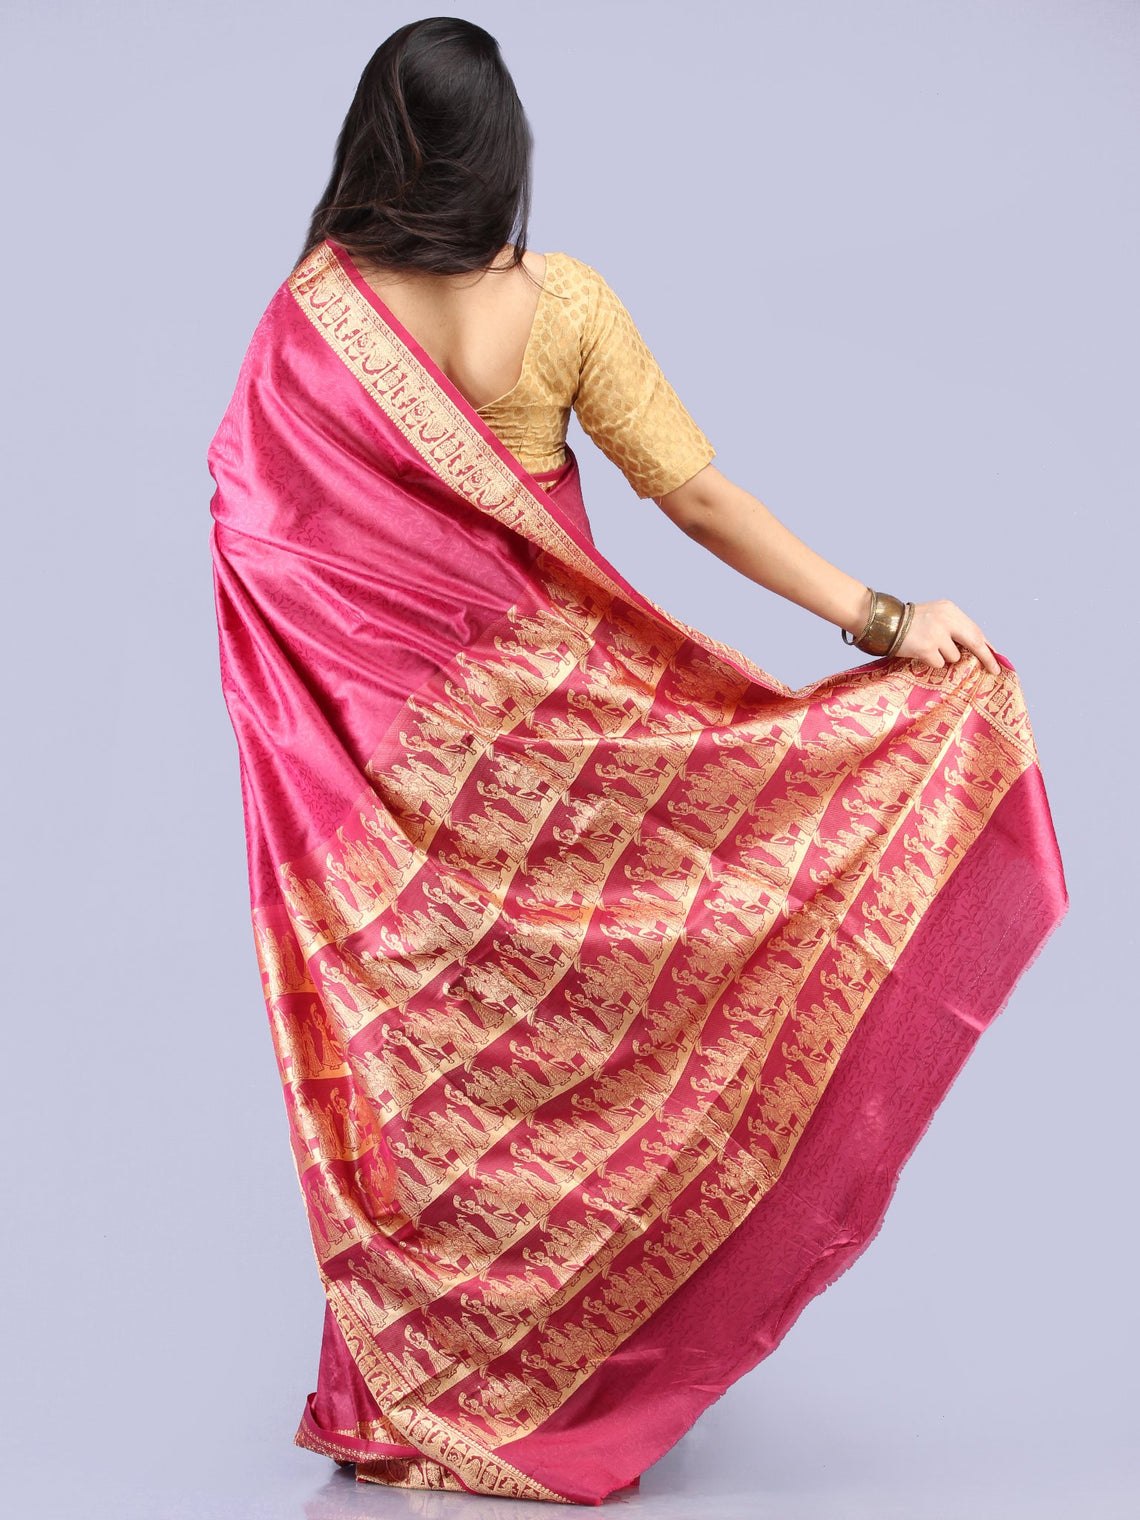 Banarasee Semi Silk Self Weave Saree With Resham Border - Plum & Golden - S031704289